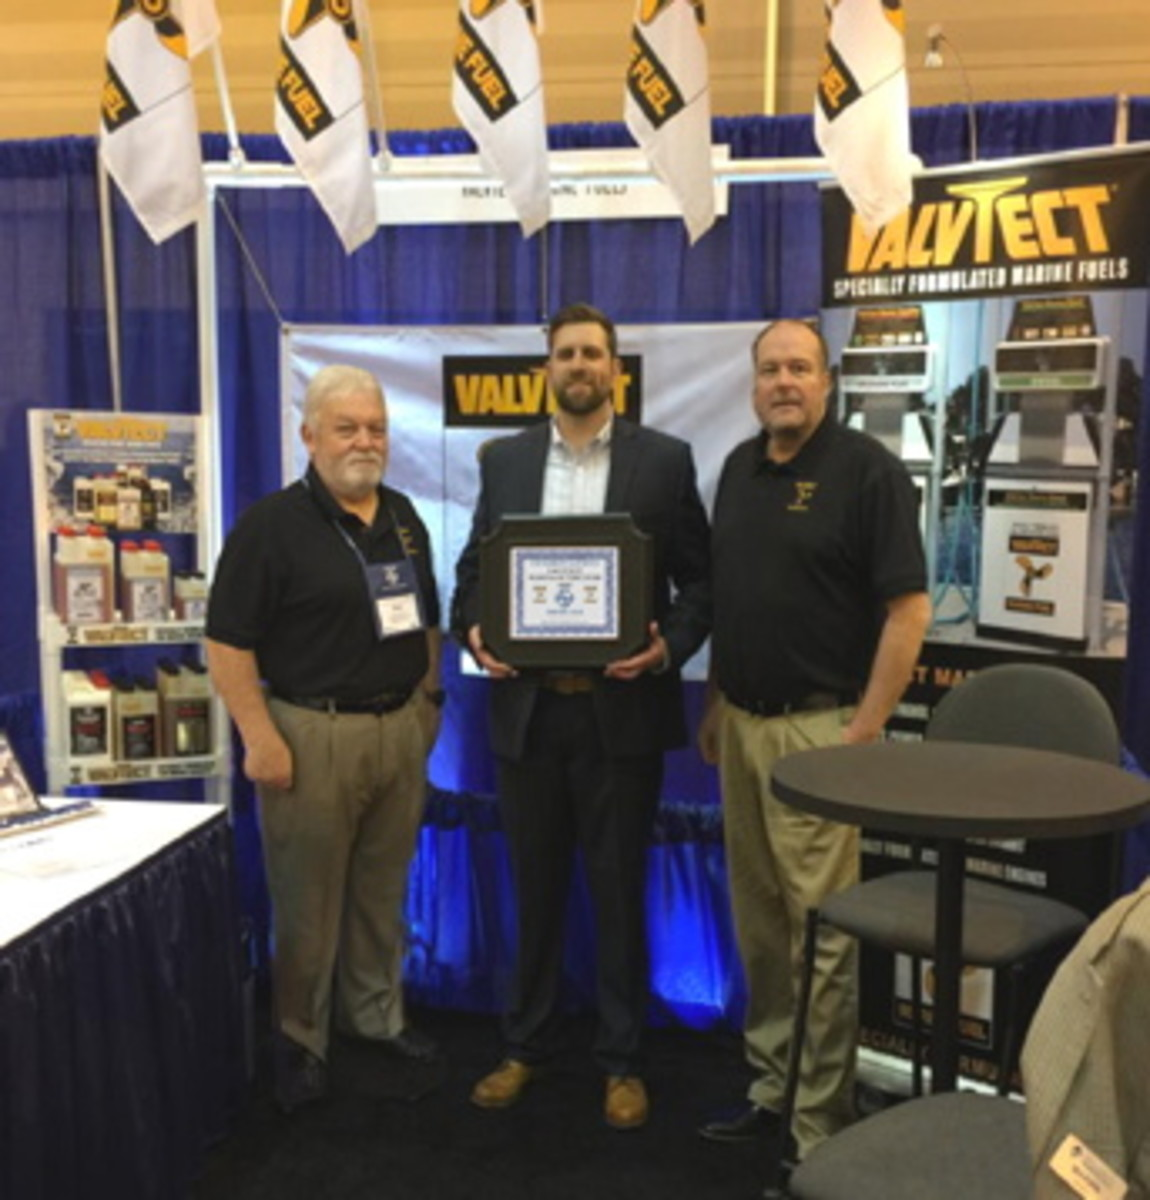 L-R, Paul Craufurd, ValvTect regional sales manager, Brian Kaloper, general manager, Grand Isle Marina and Marvin Griffin, president ValvTect Petroleum Protect